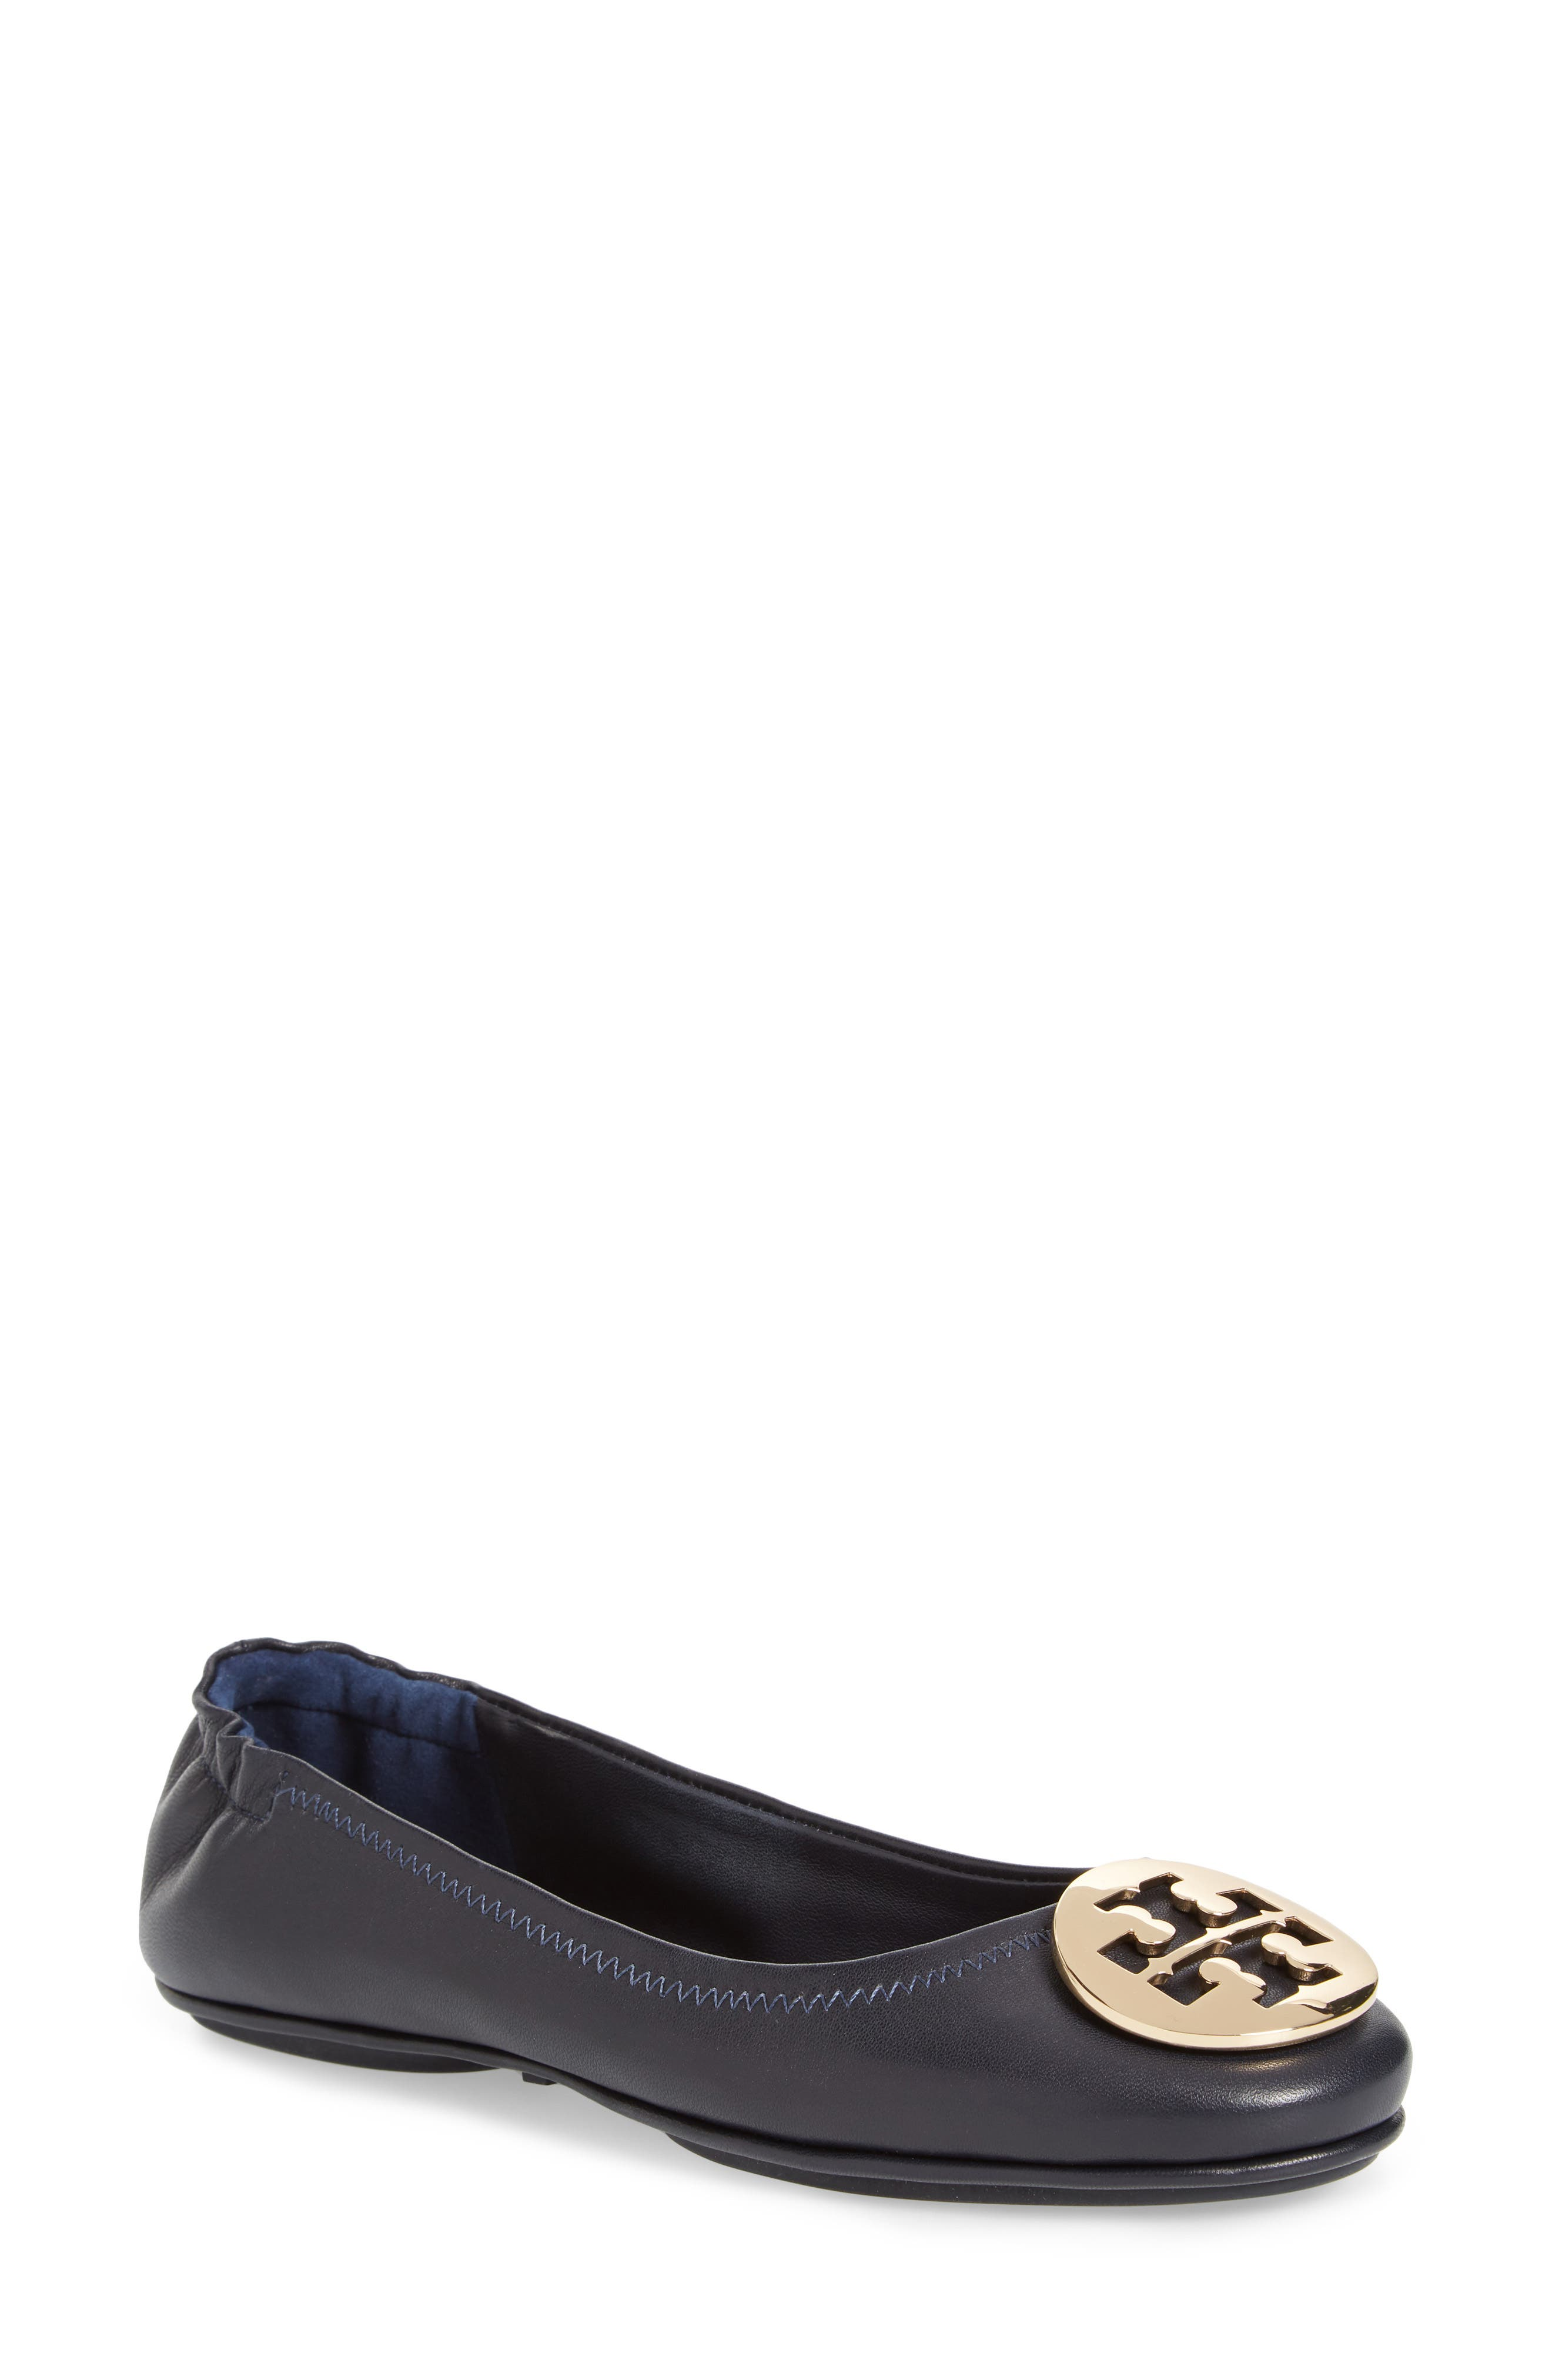 'Minnie' Travel Ballet Flat,                             Main thumbnail 1, color,                             PERFECT NAVY